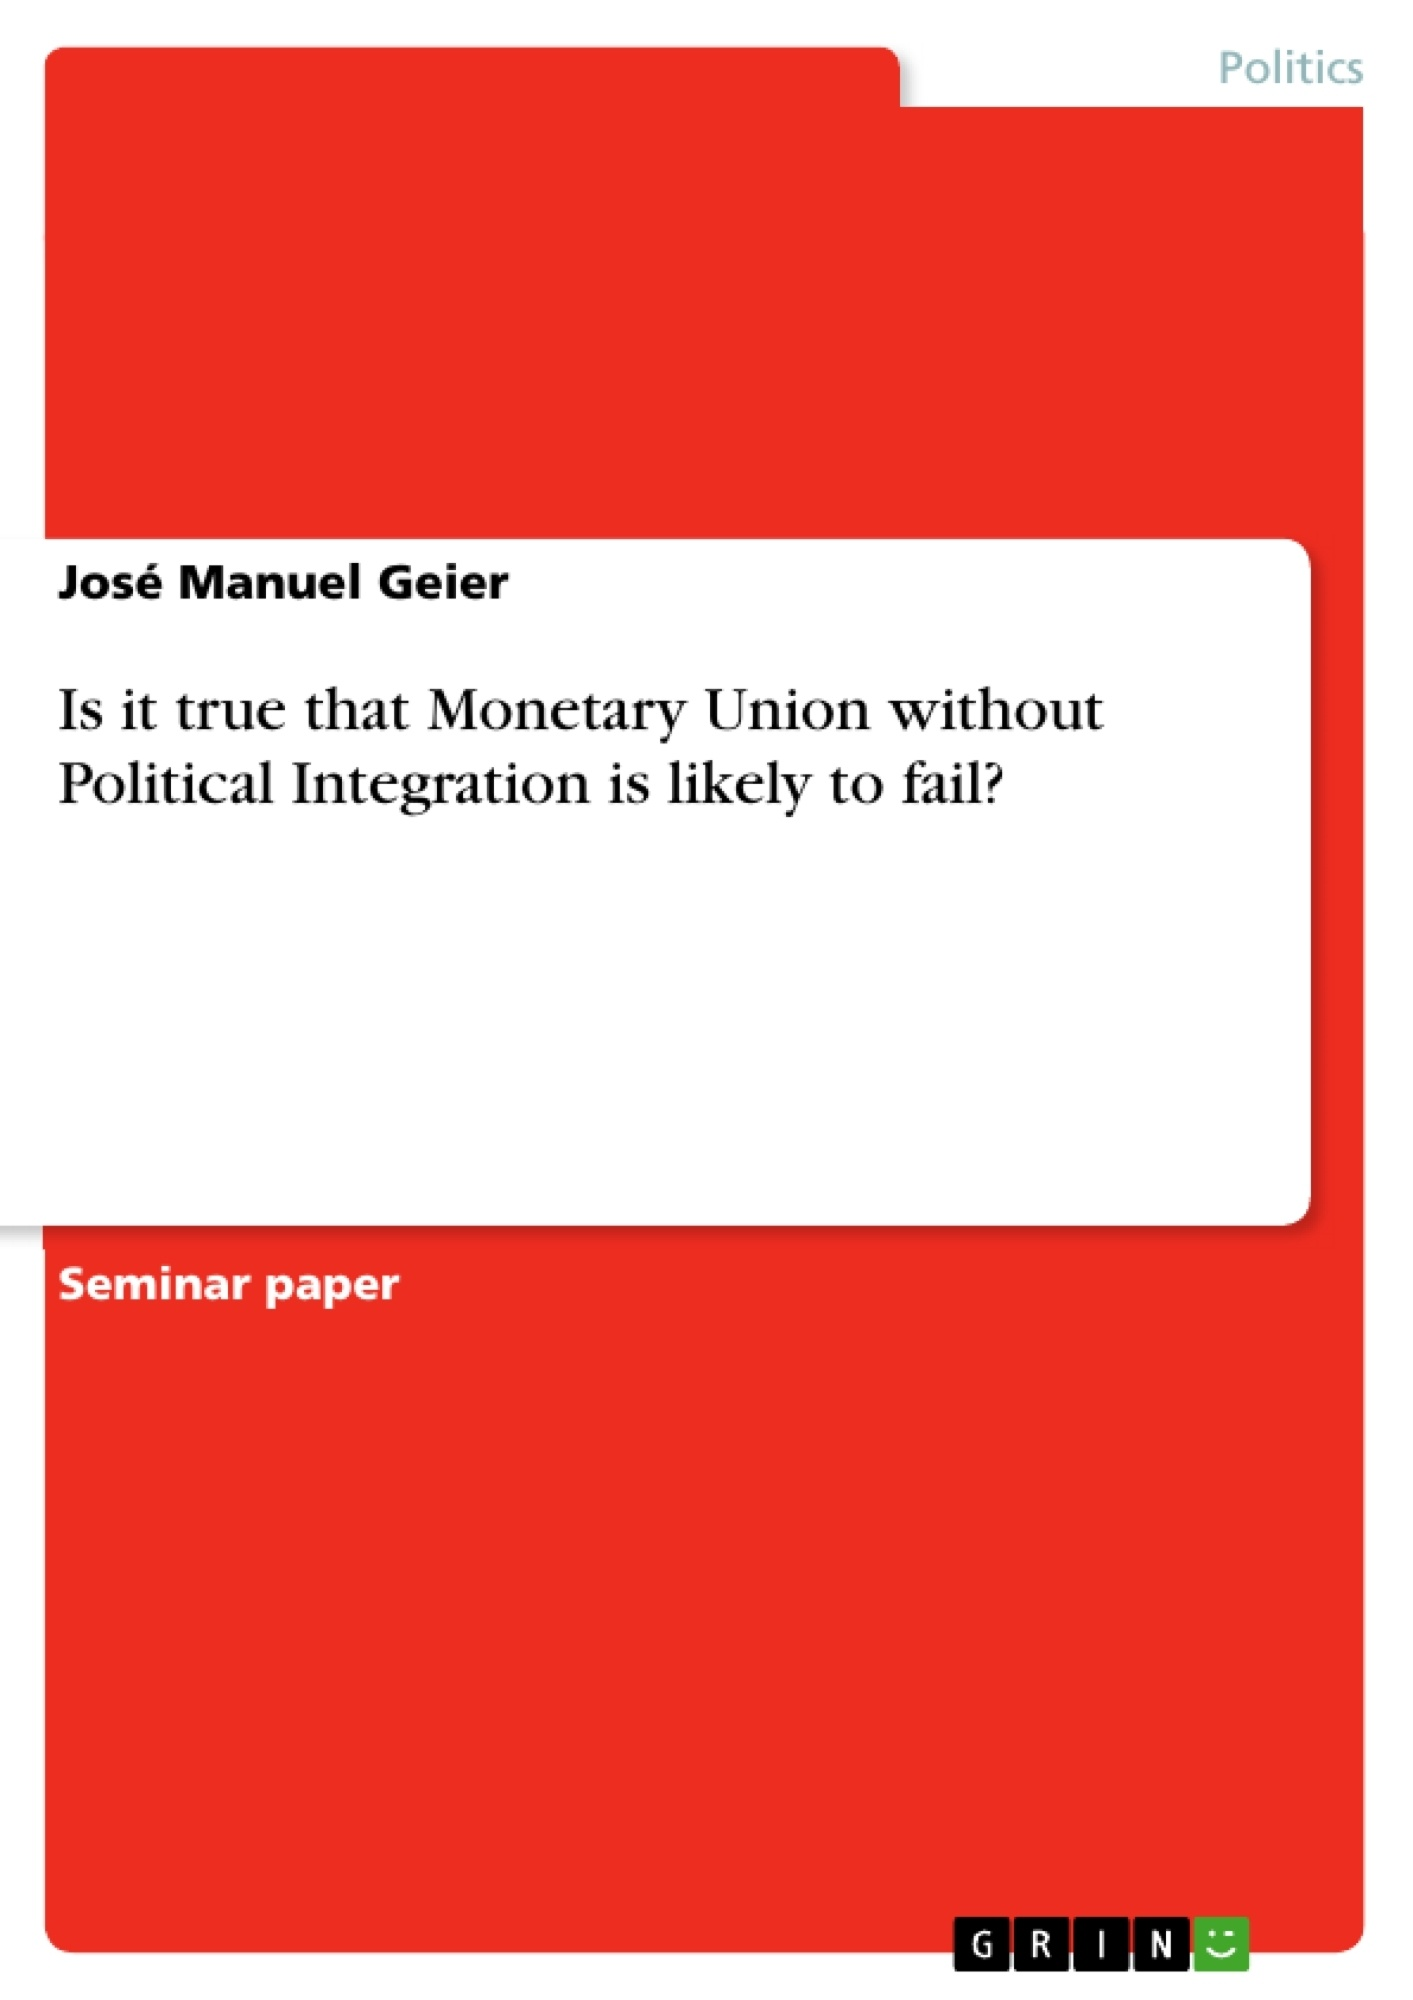 Title: Is it true that Monetary Union without Political Integration is likely to fail?